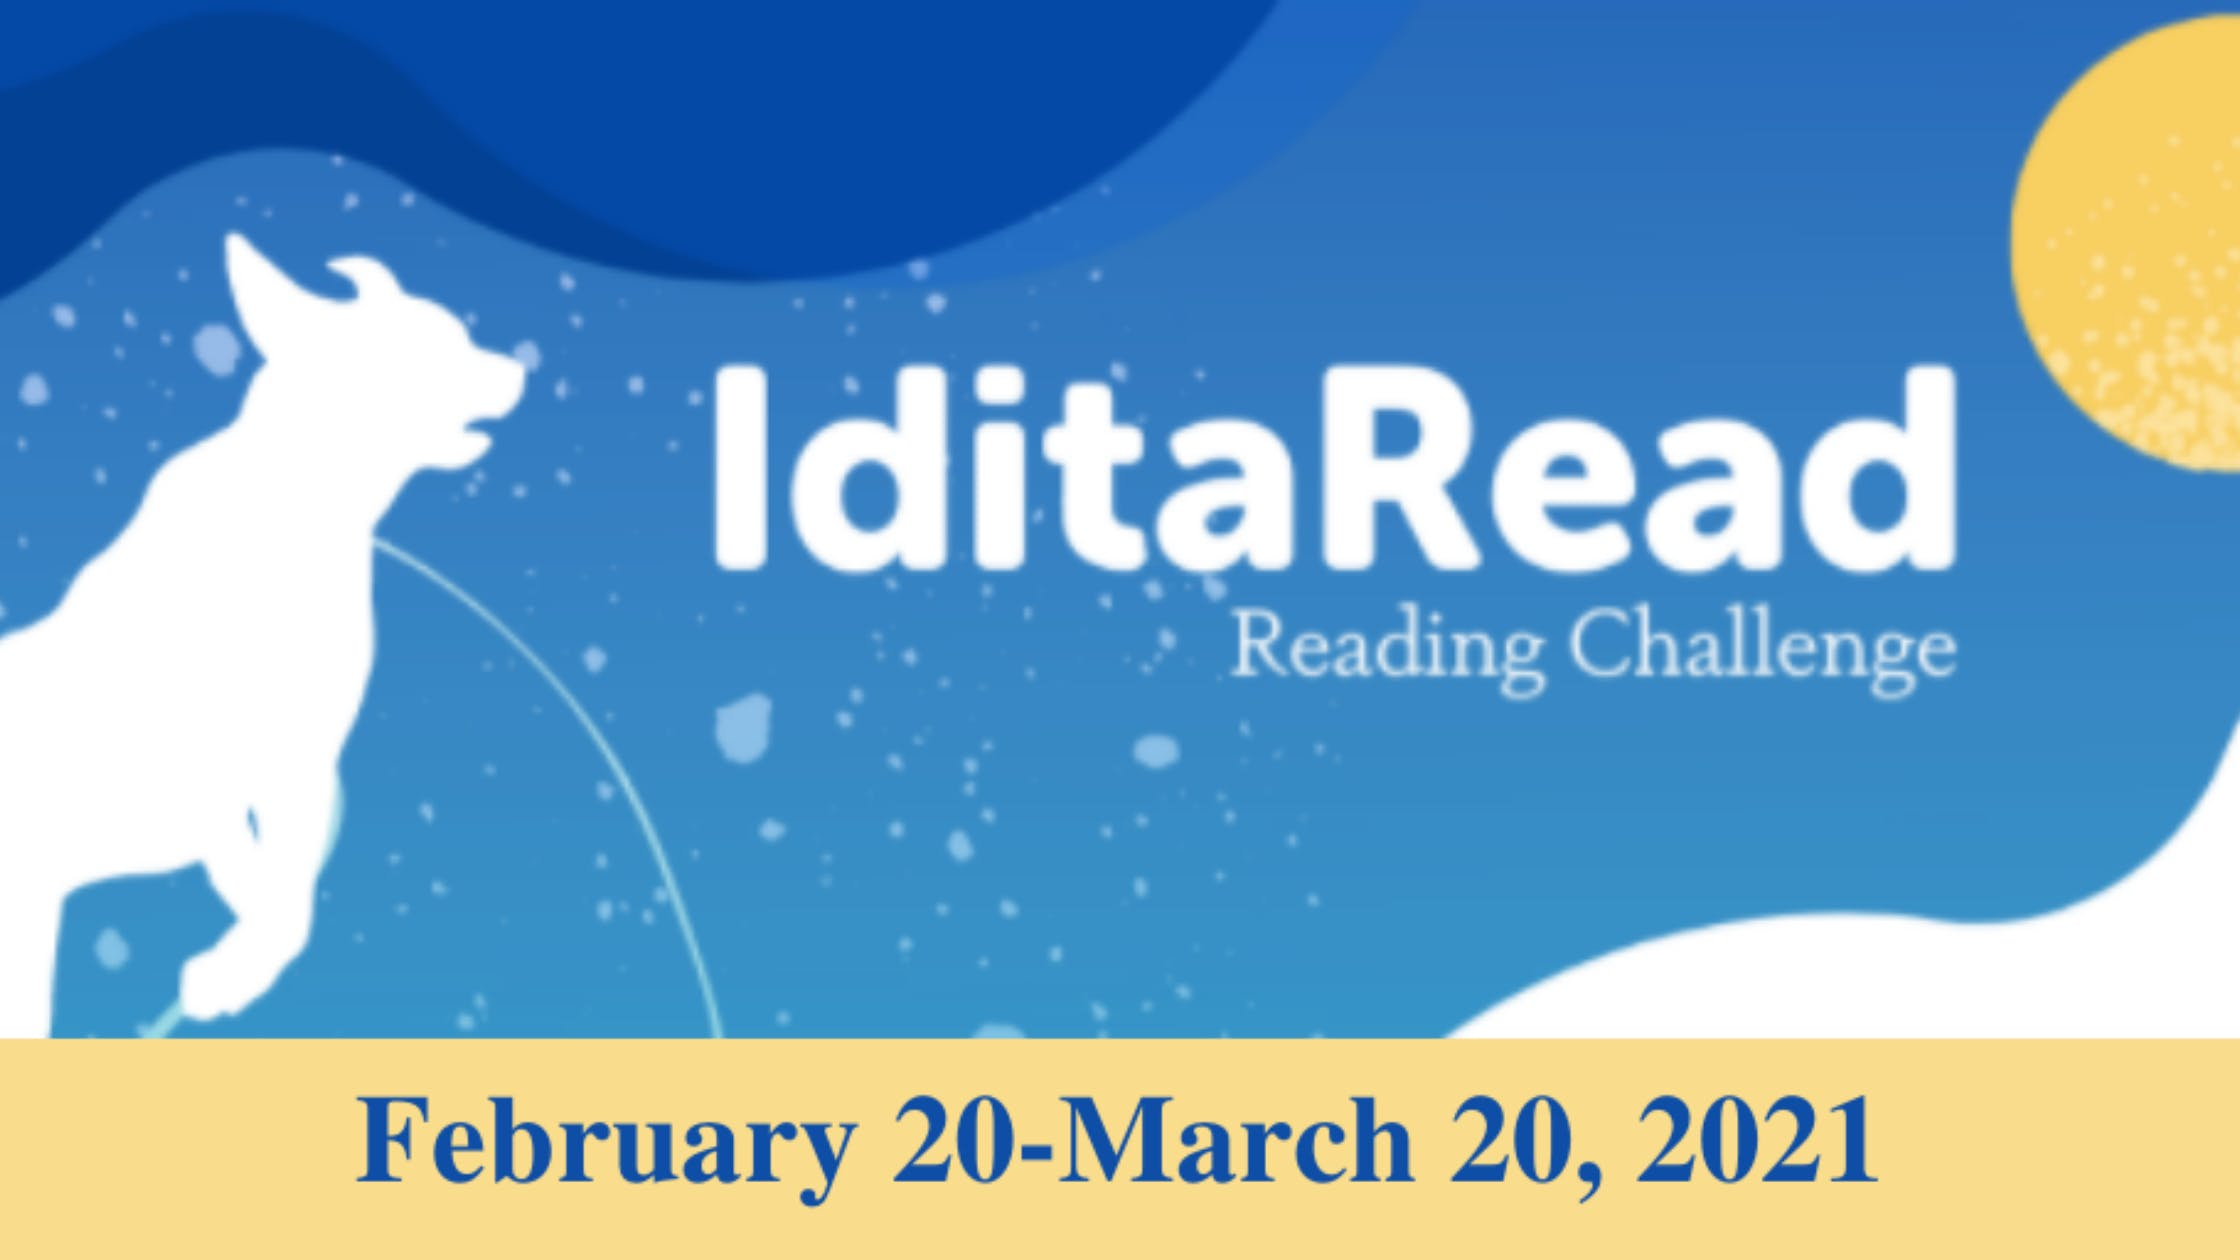 IditaRead Reading Challenge Starts February 20